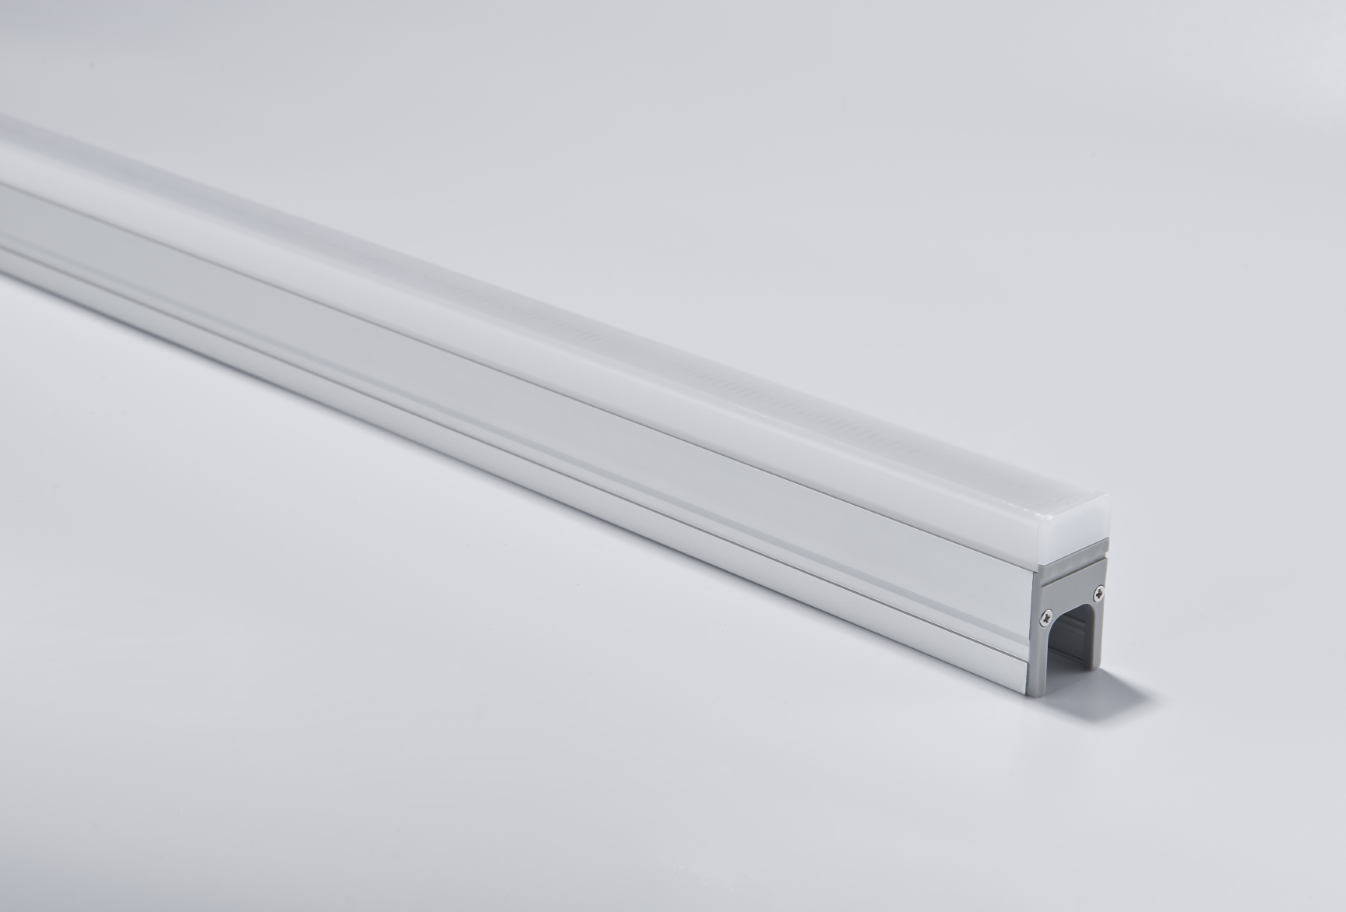 RH-C26 LED Linear Light with Flexible LED Strip Light and Aluminium Extrusion Profile for Decoration Light